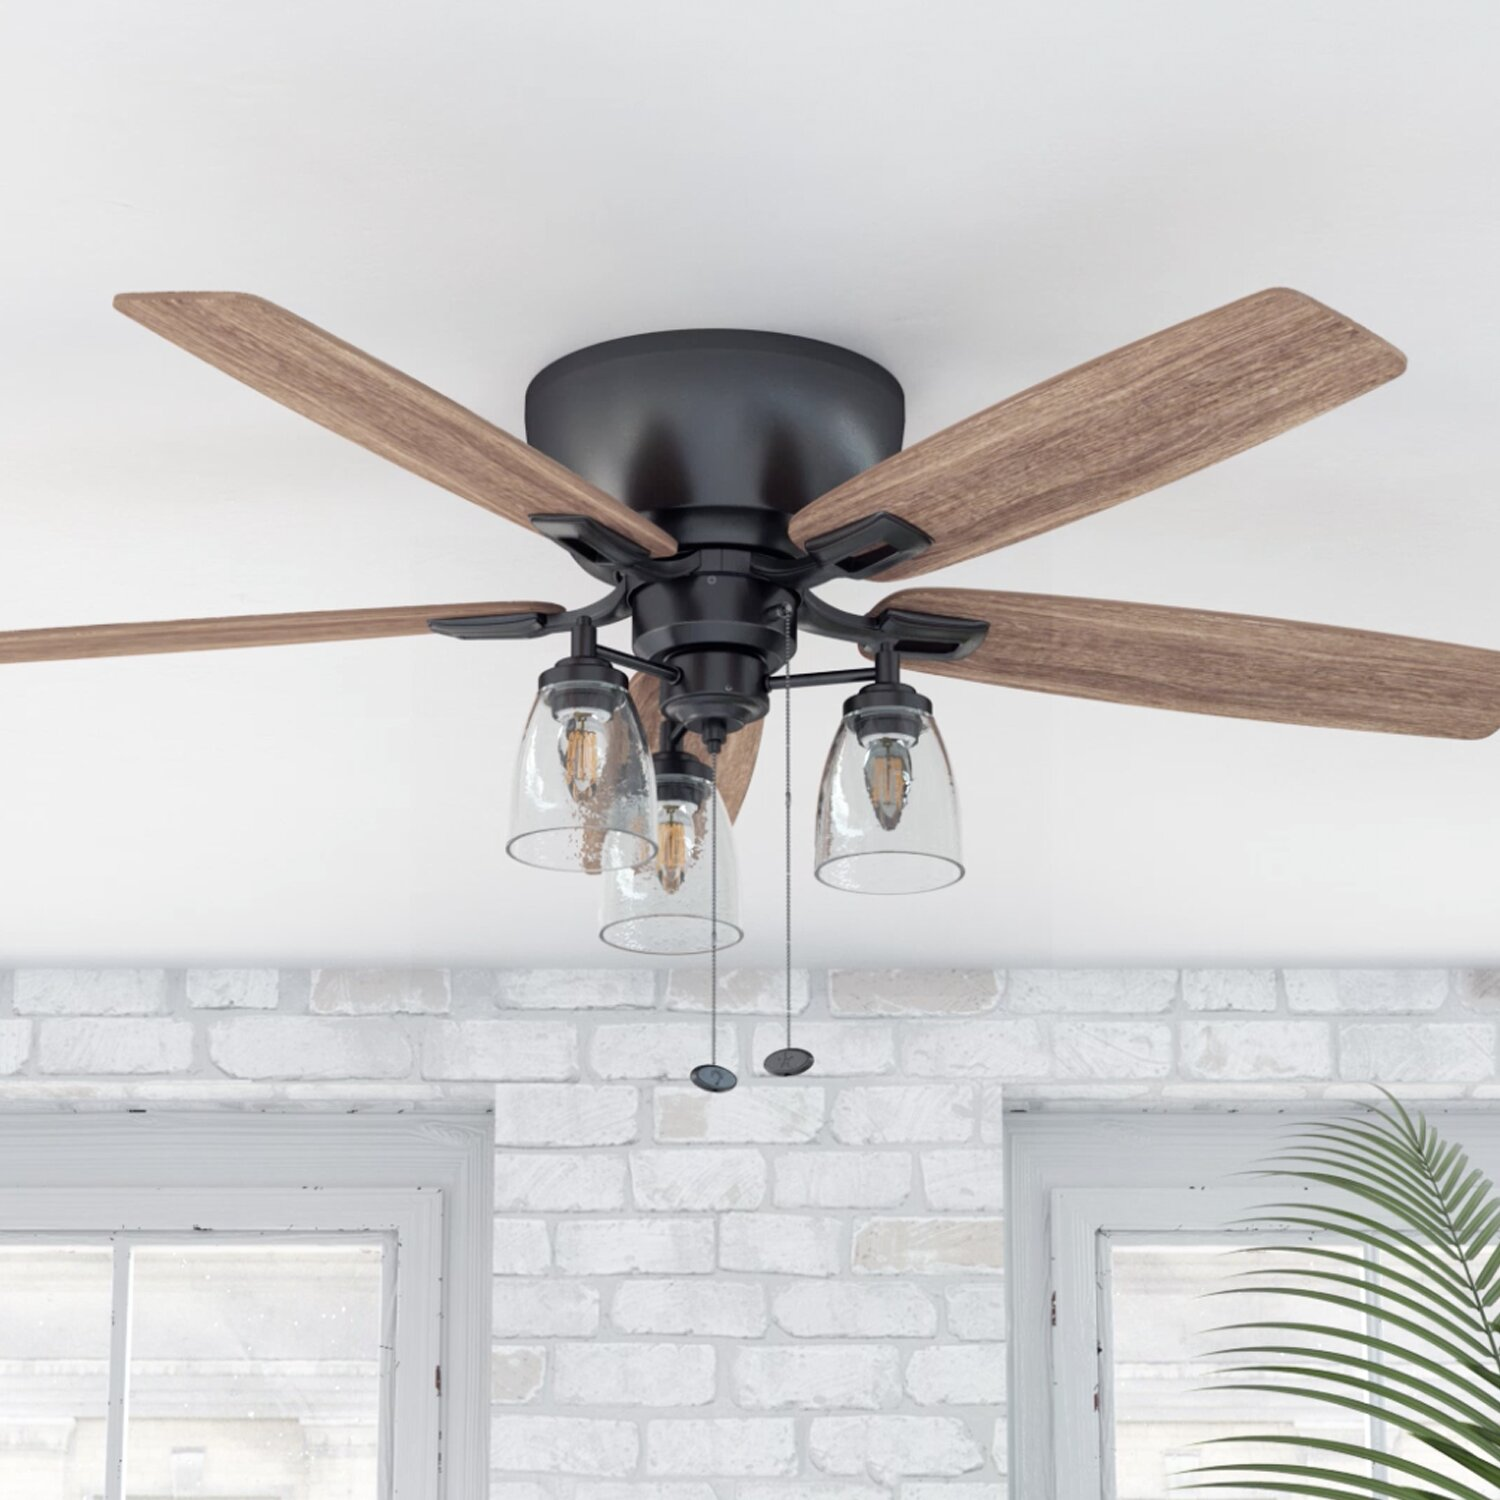 Calcutta 52 Arthur 5 Blade Flush Mount Ceiling Fan With Pull Chain And Light Kit Included Reviews Wayfair